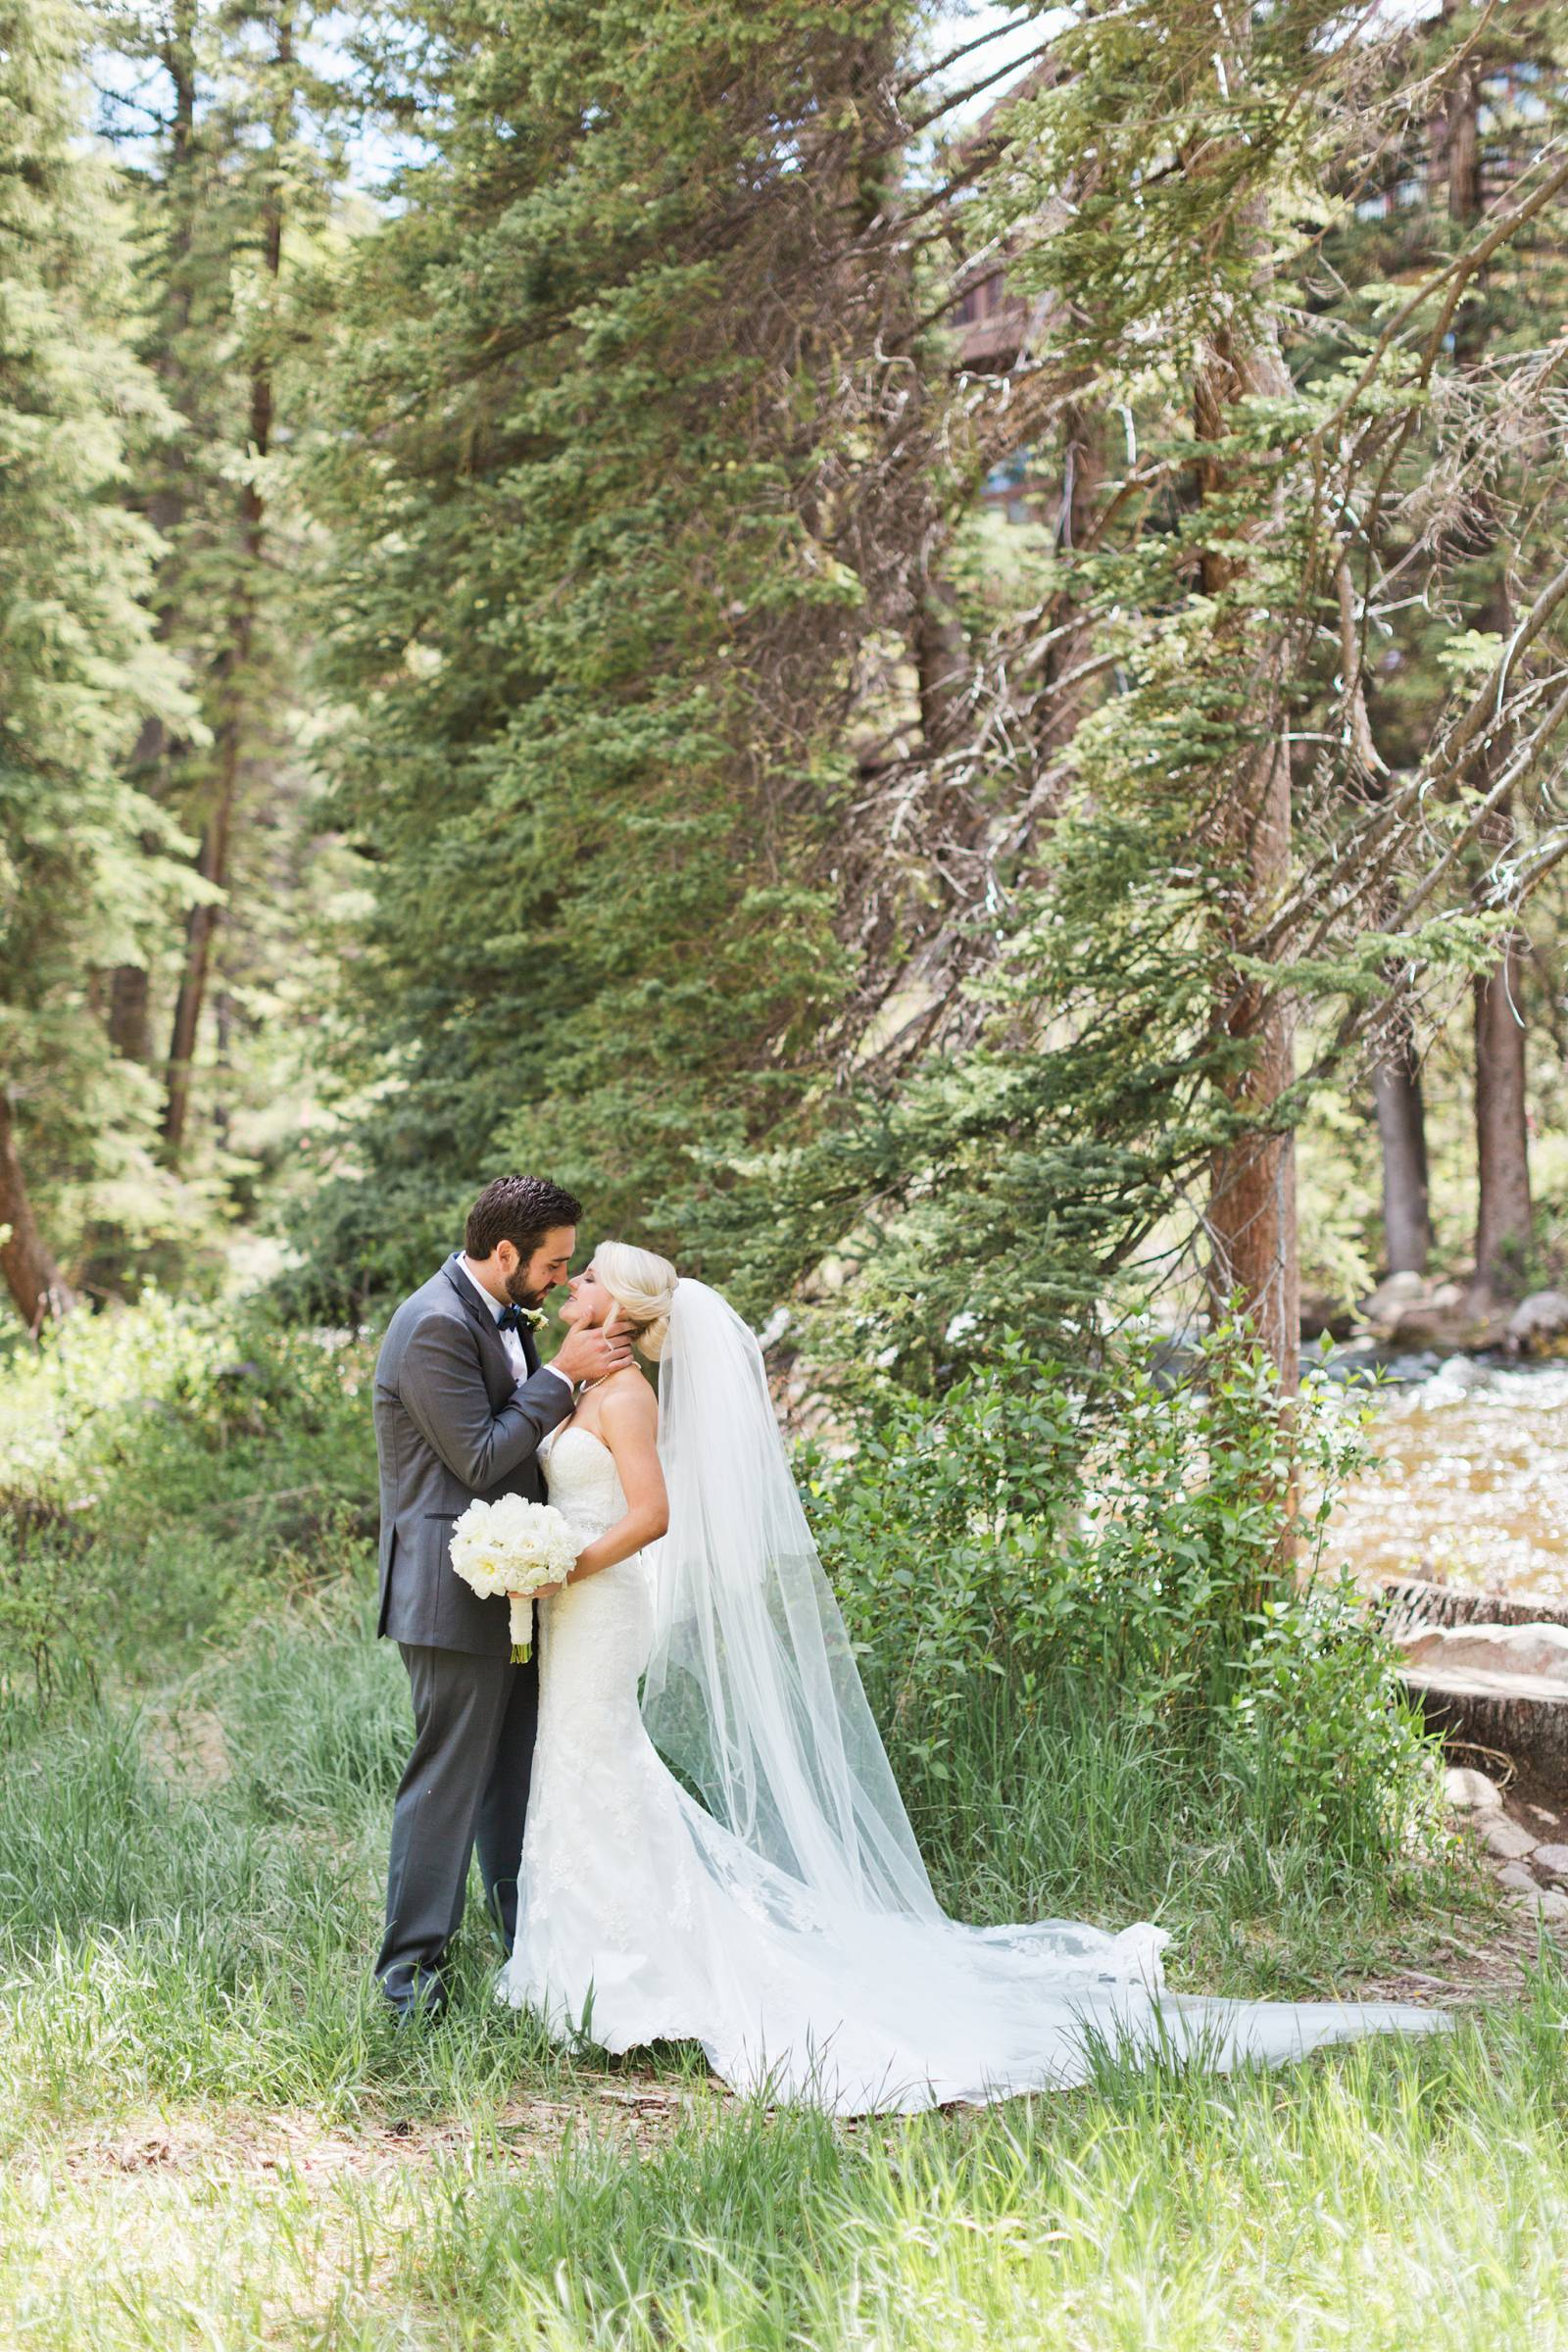 wedding portrait in the forest | classy Rocky Mountain wedding in Vail, Colorado